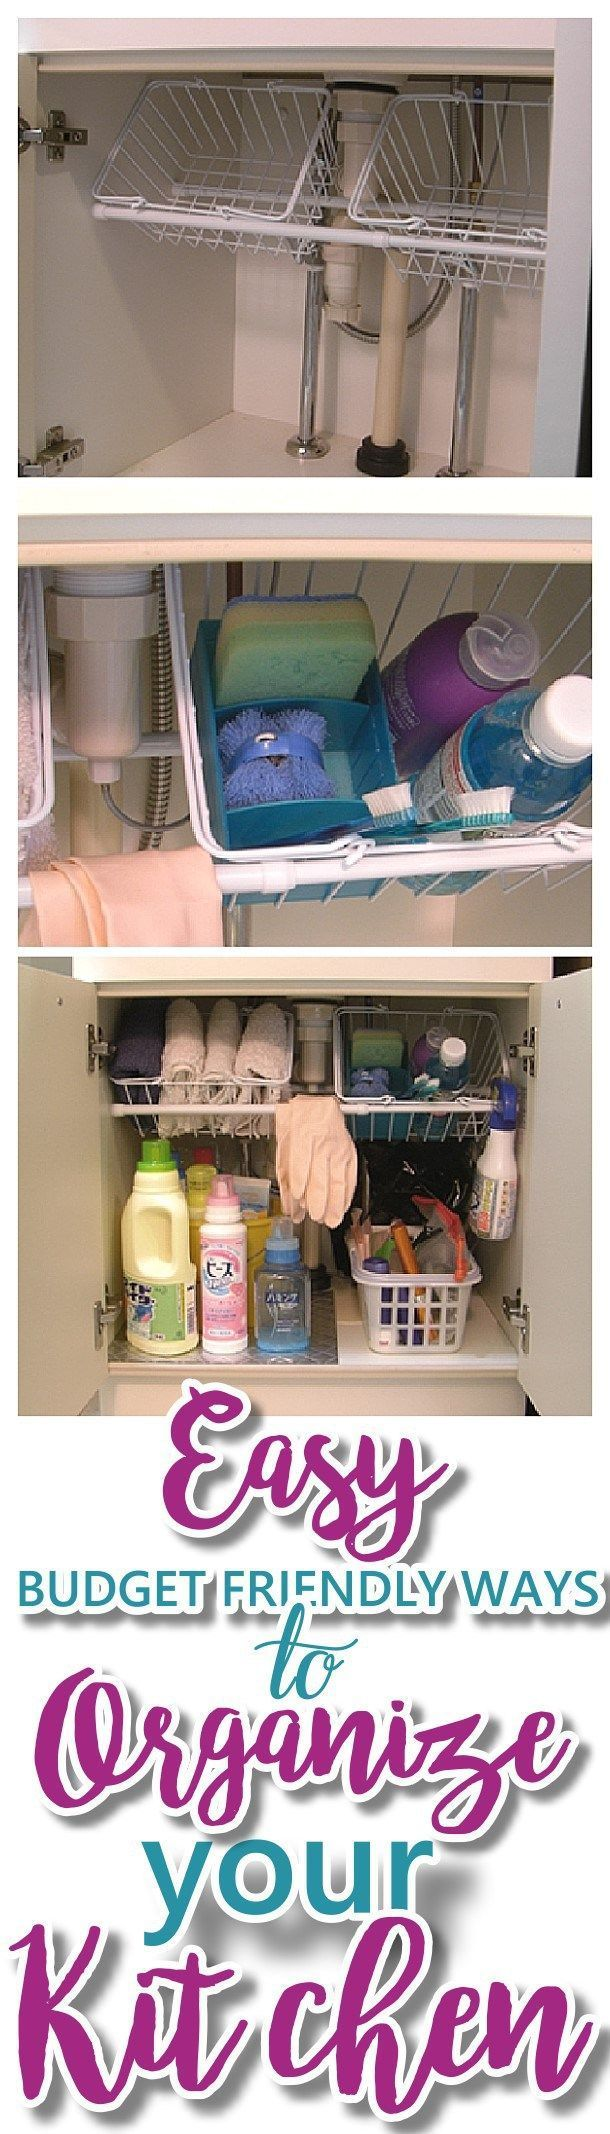 EASY Budget Friendly Ways To Organize Your Kitchen - The ...